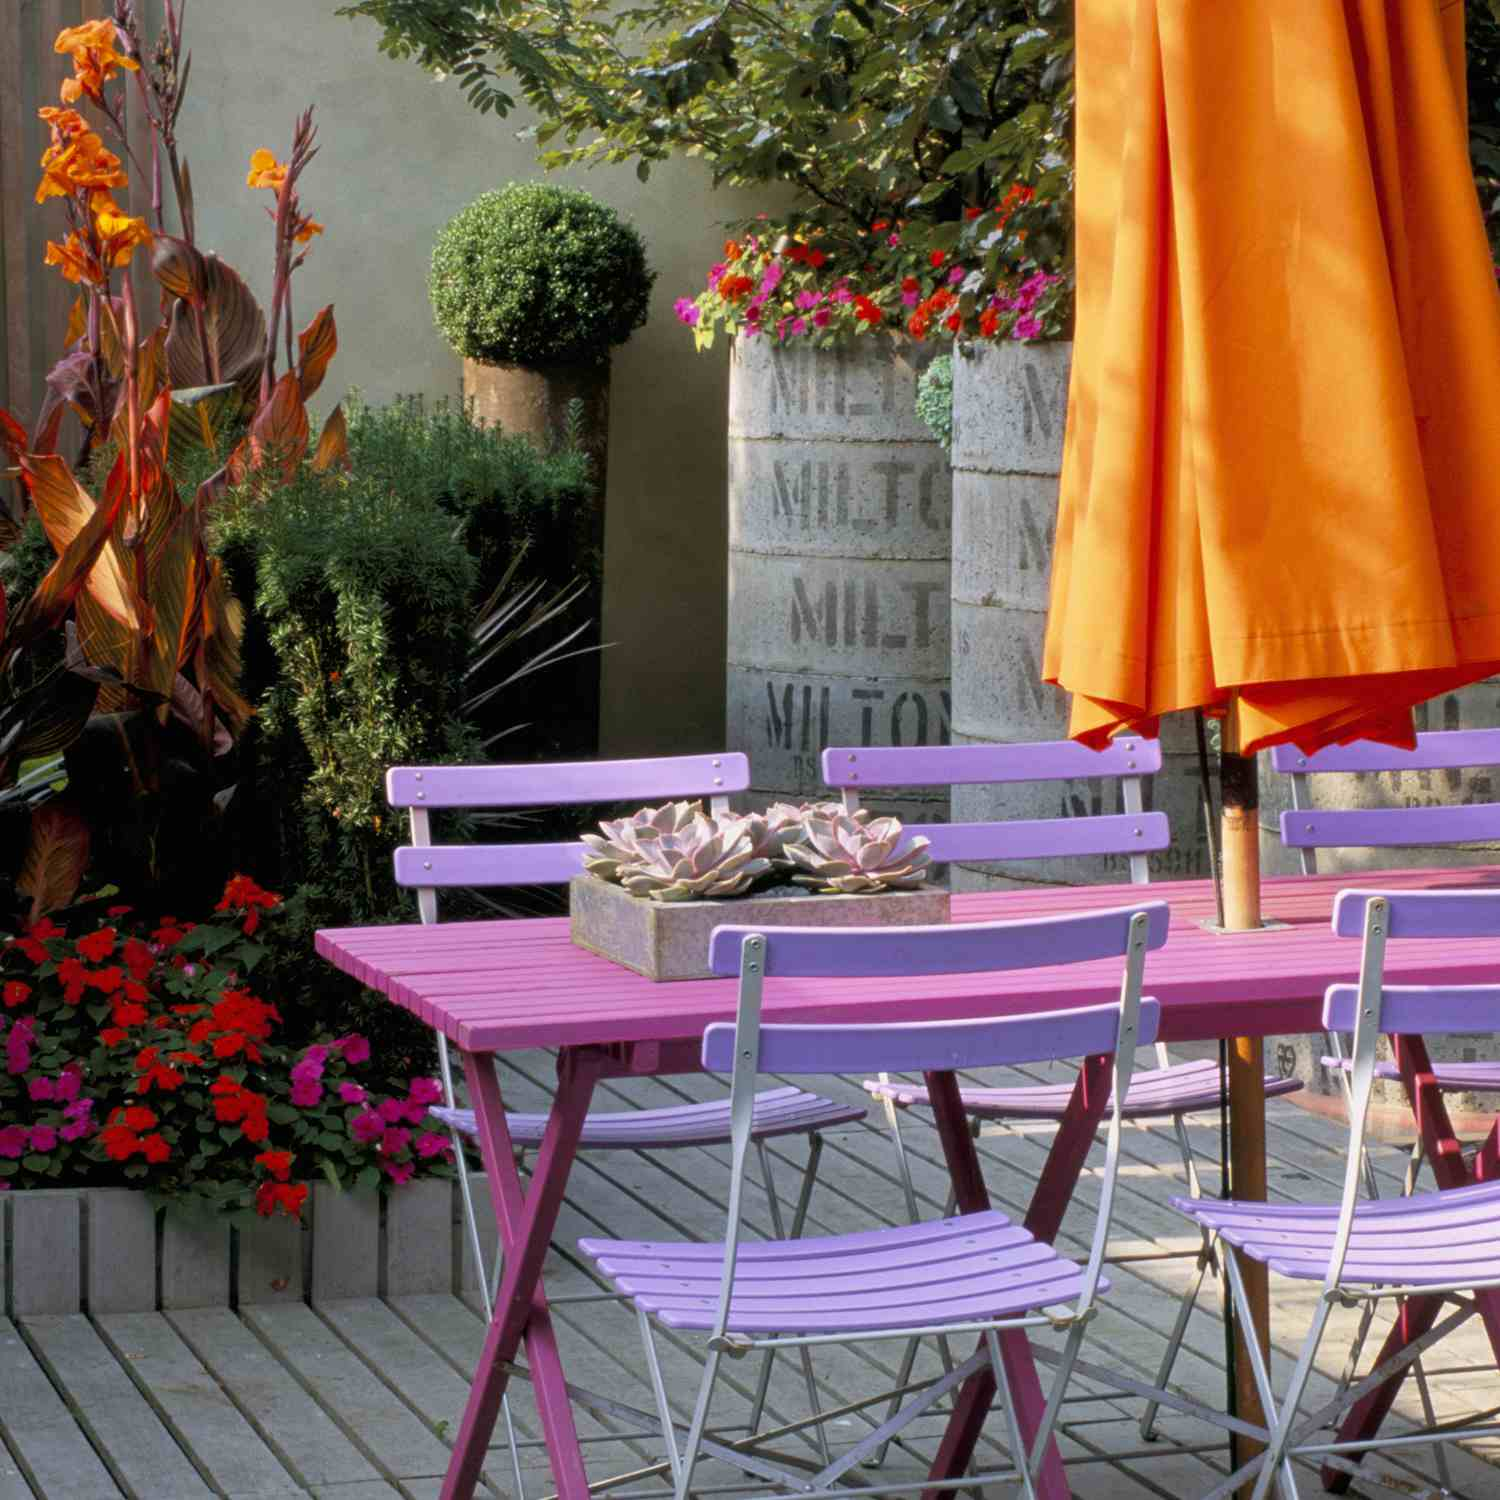 A pop of color lends creativity to outdoor design